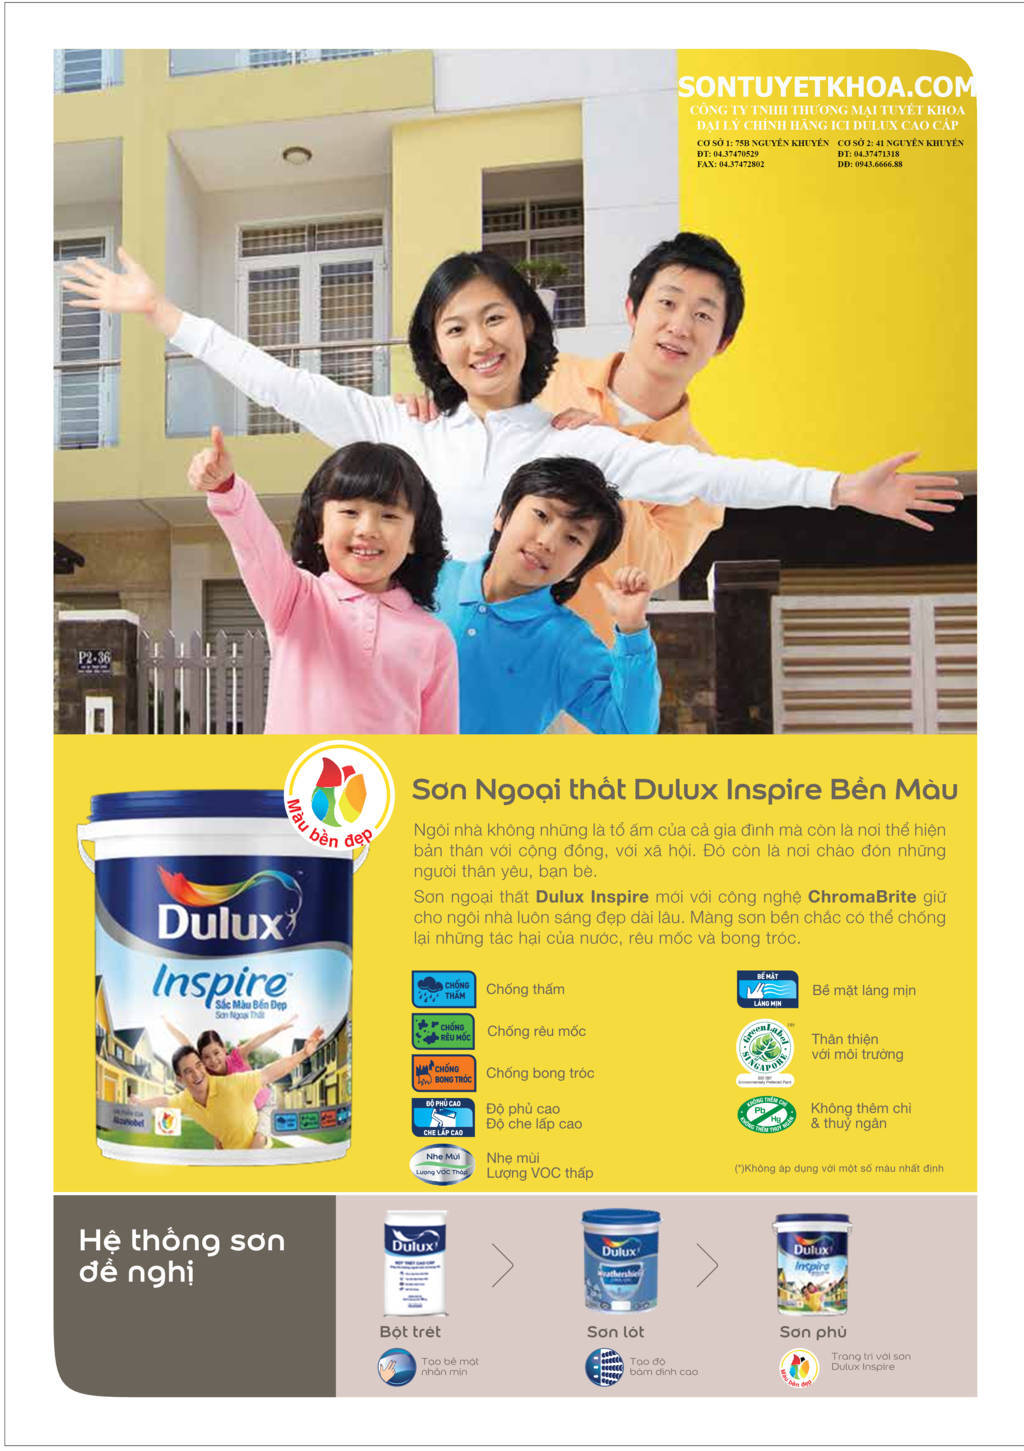 bang-mau-son-ngoai-that-dulux-Inspire-2 -son-dulux